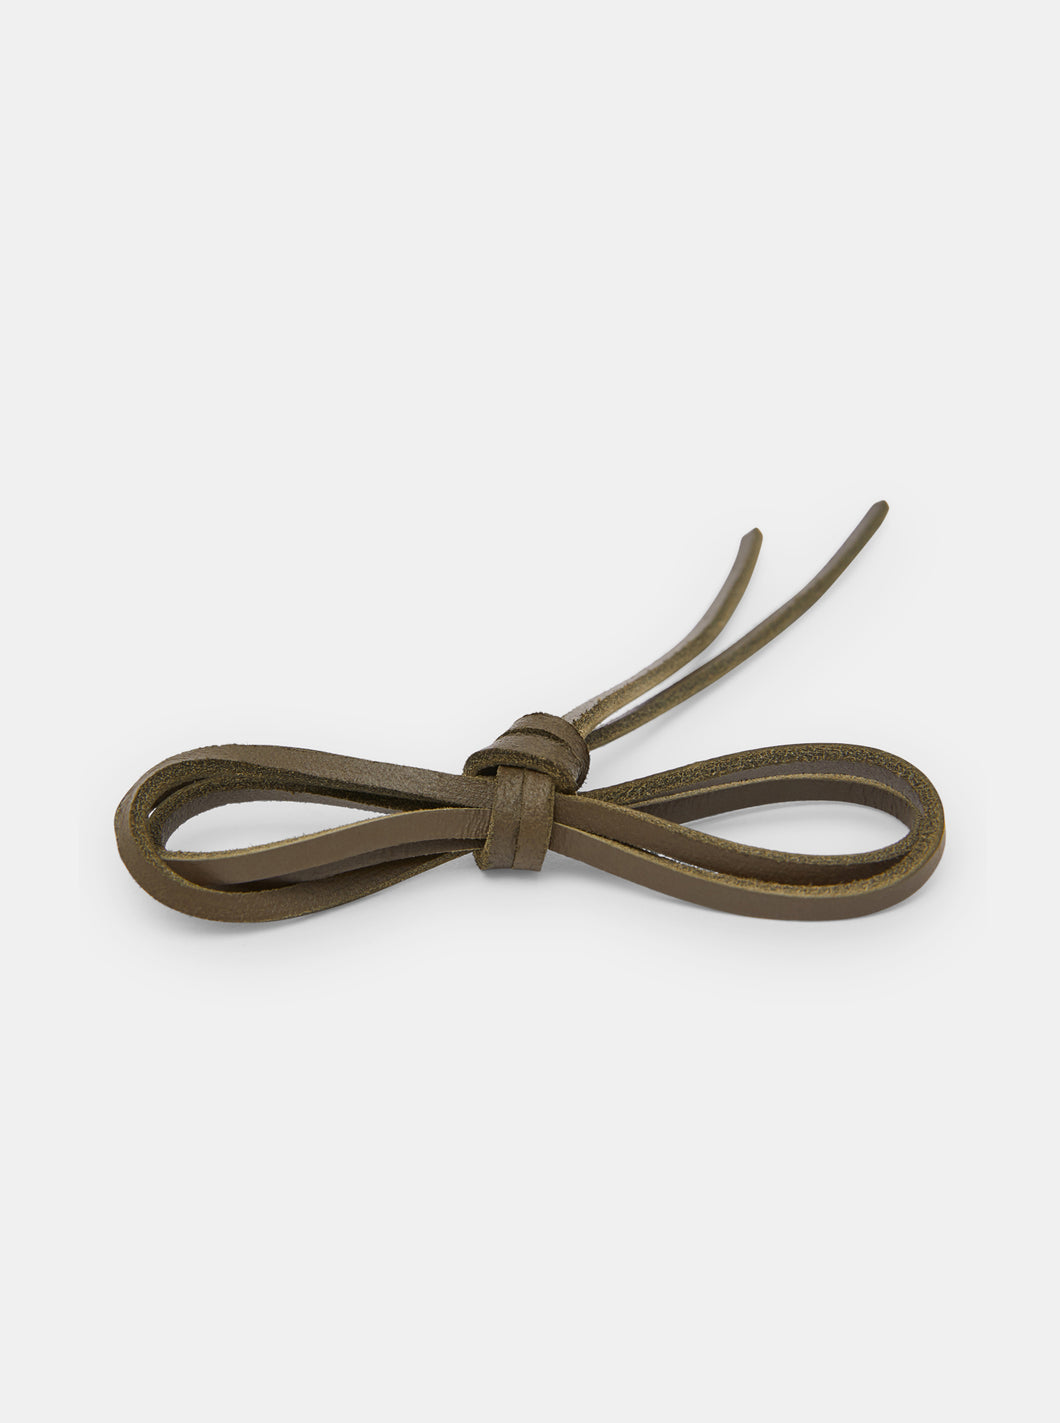 Yogi Leather Laces 150cm - Olive